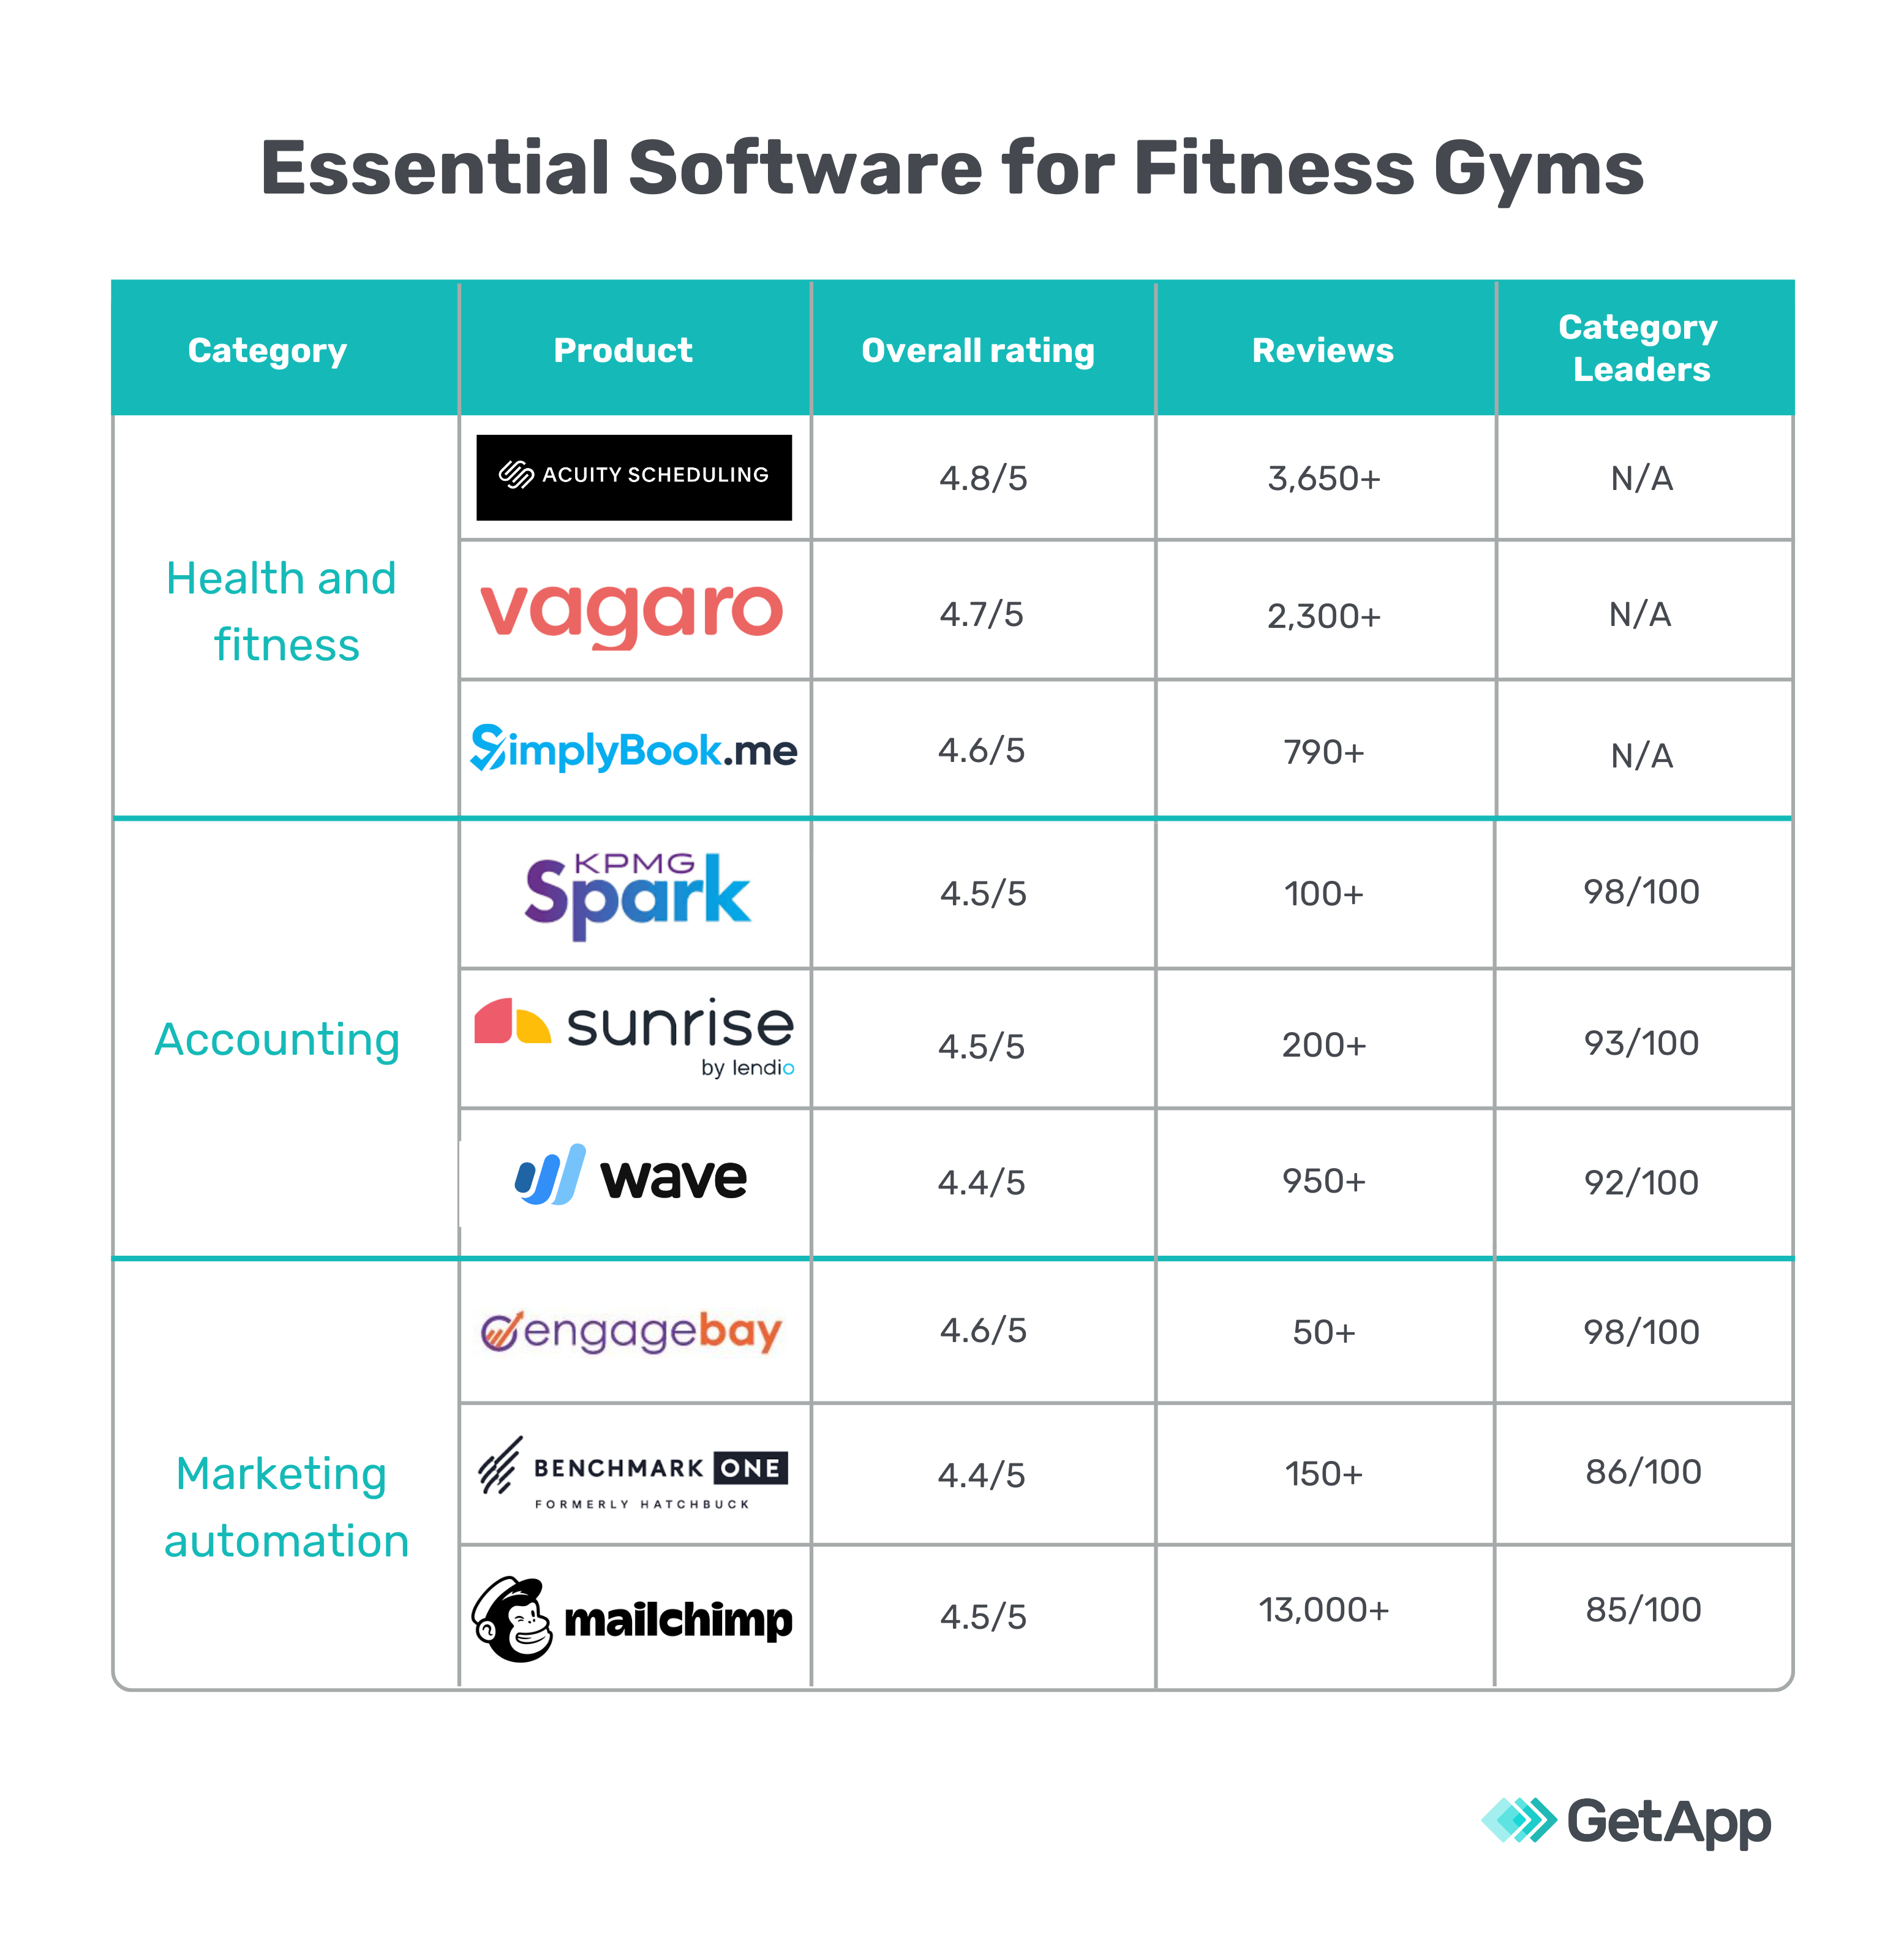 graph comparing essential software for fitness gyms